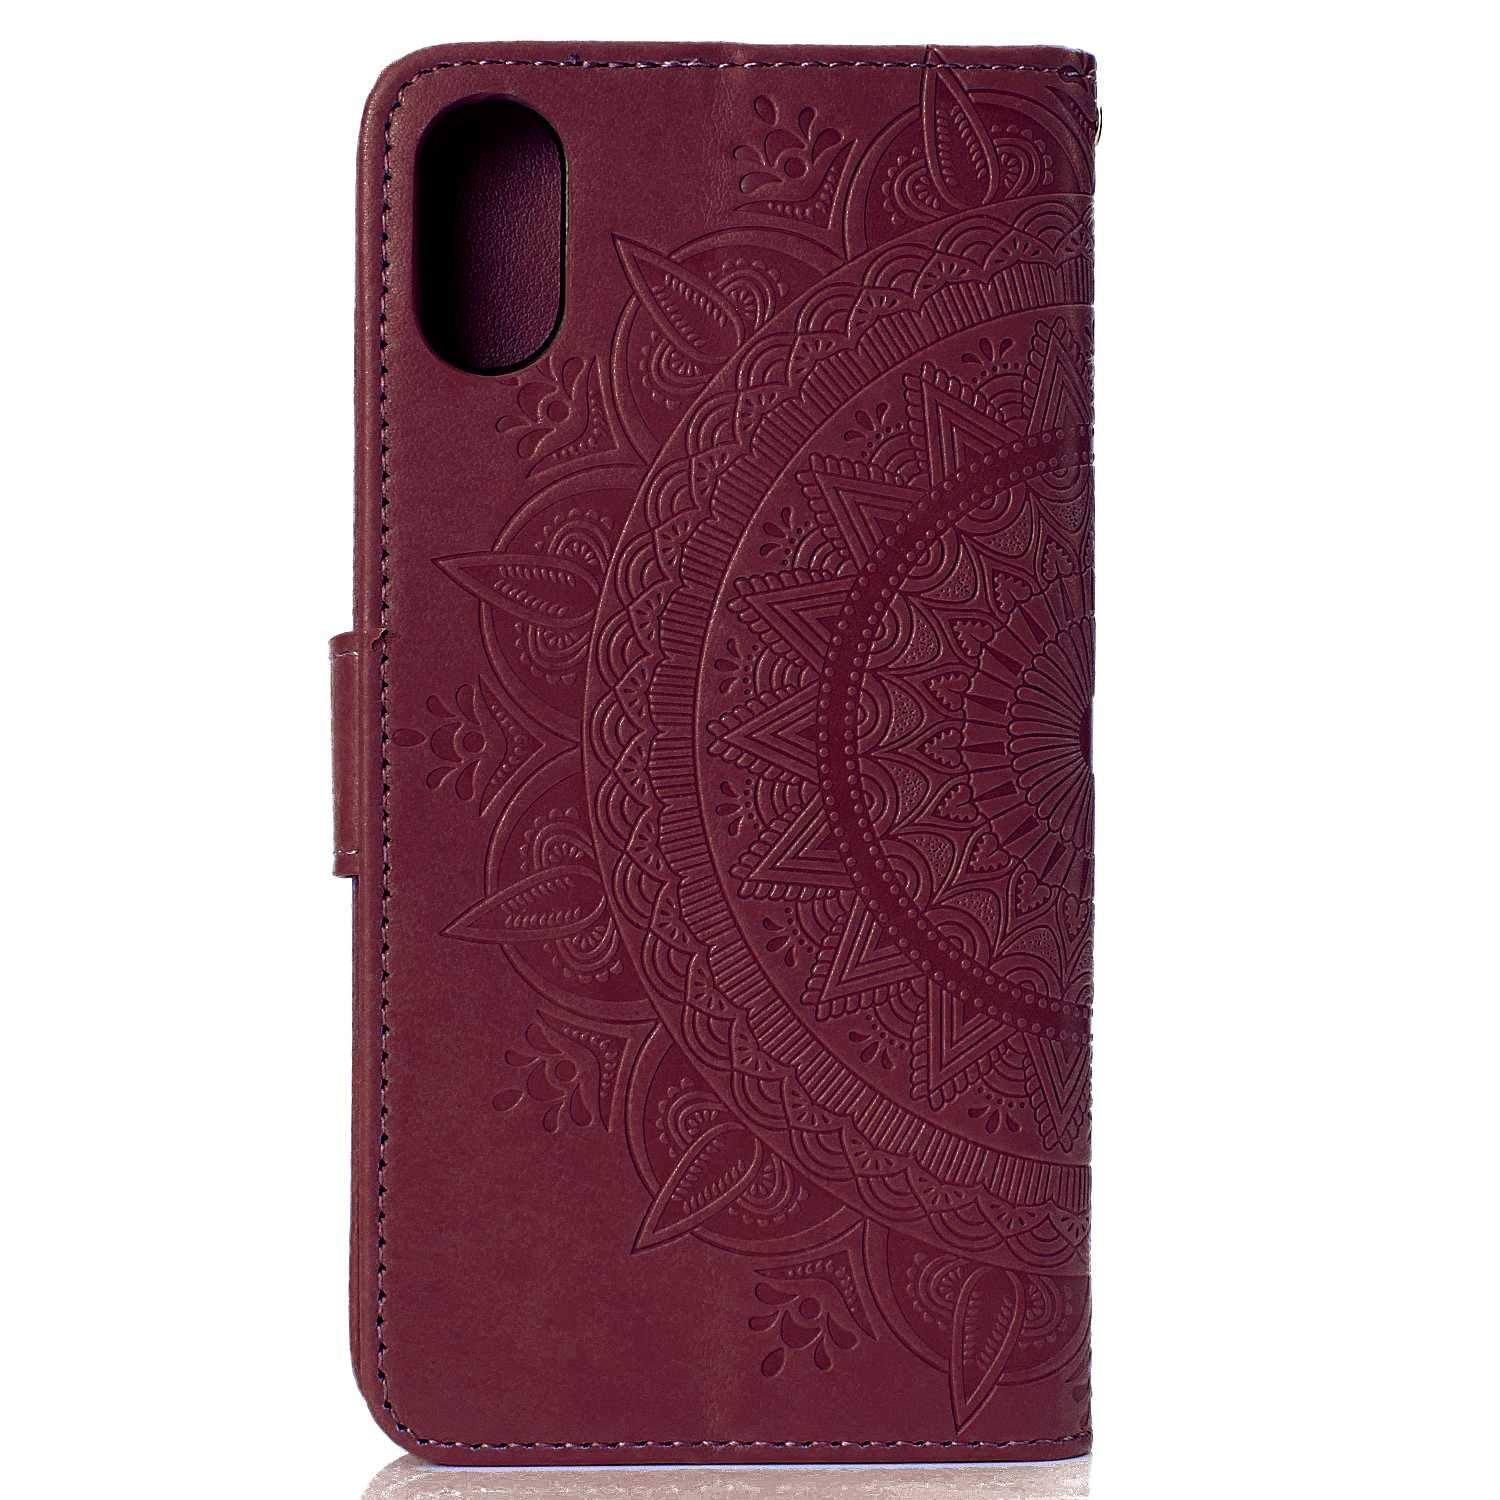 Case iPhone XR, Bear Village PU Leather Embossed Design Case with Card Holder and ID Slot, Wallet Flip Stand Cover for Apple iPhone XR (#7 Brown) by Bear Village (Image #2)